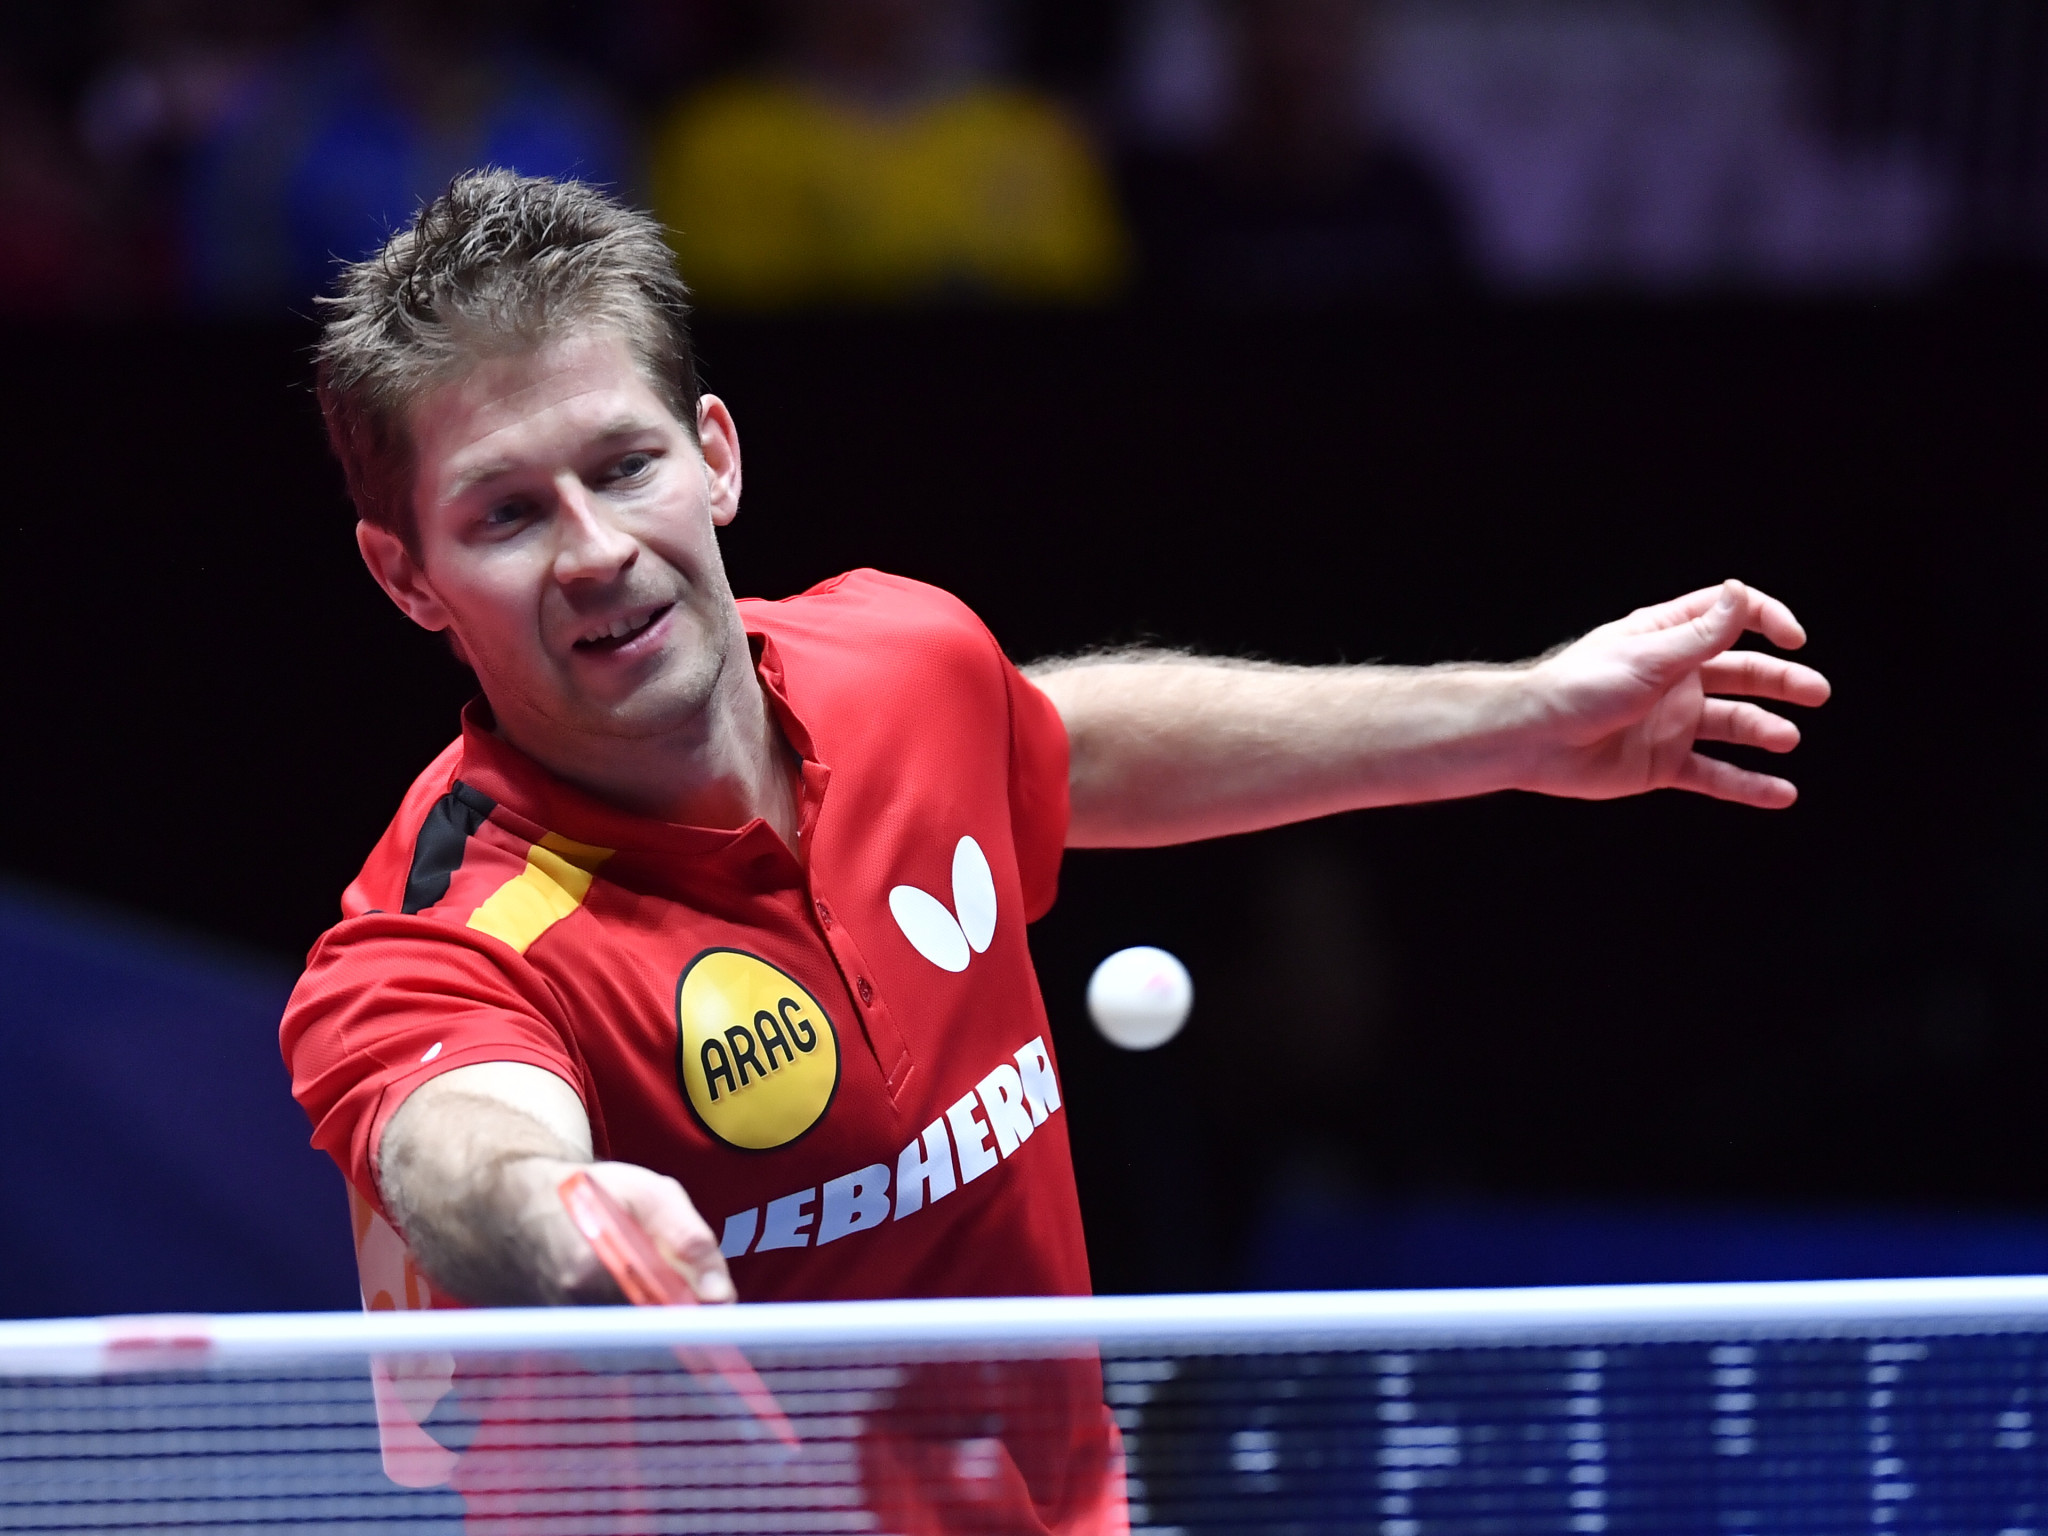 Pitchford upsets Germany's former world number one Boll to reach ITTF Austrian Open semi-finals